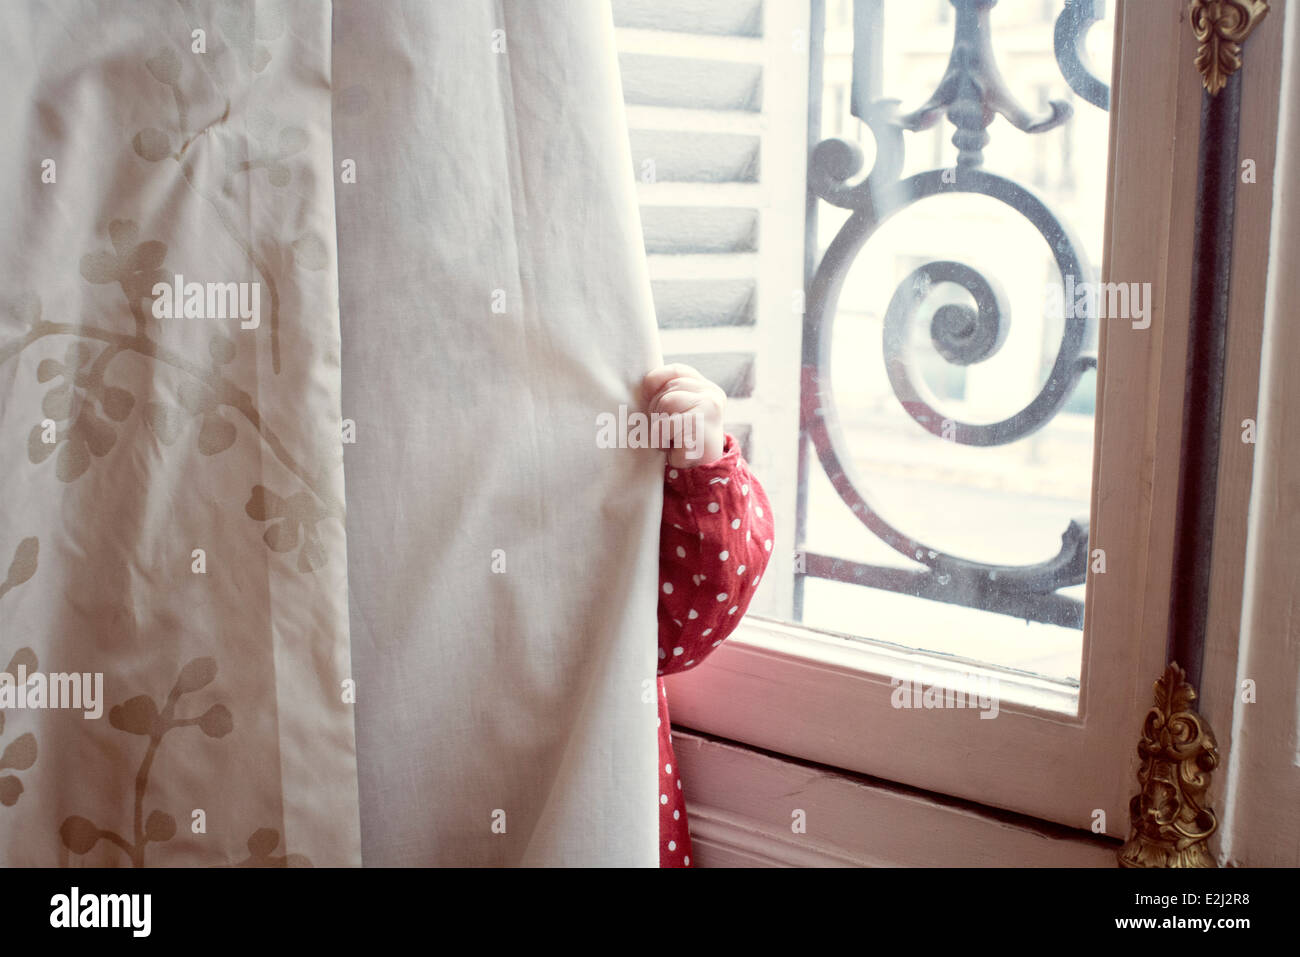 Child hiding behind curtain - Stock Image